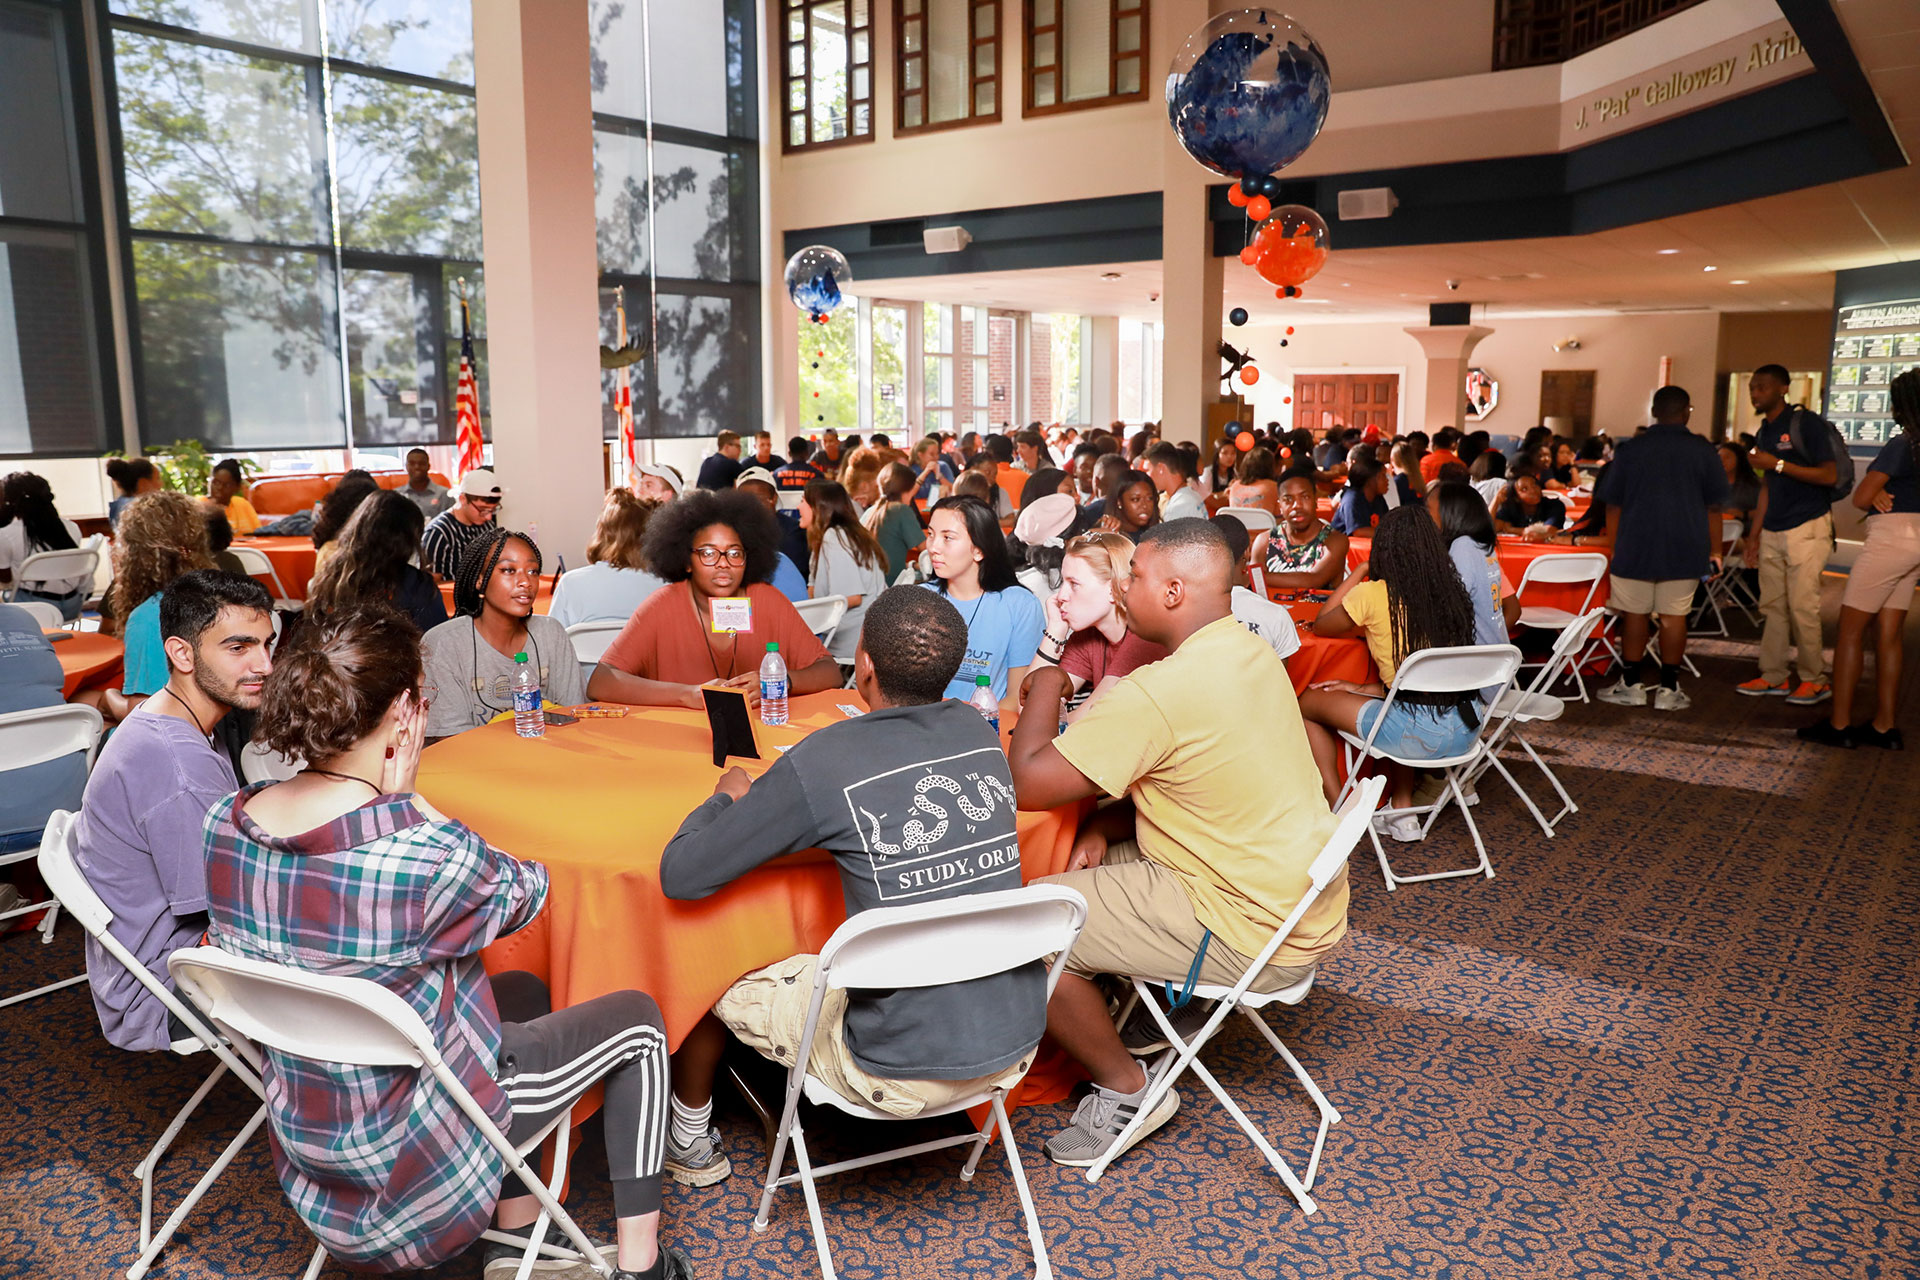 Students seated at tables during the Tiger Retreat event in 2019